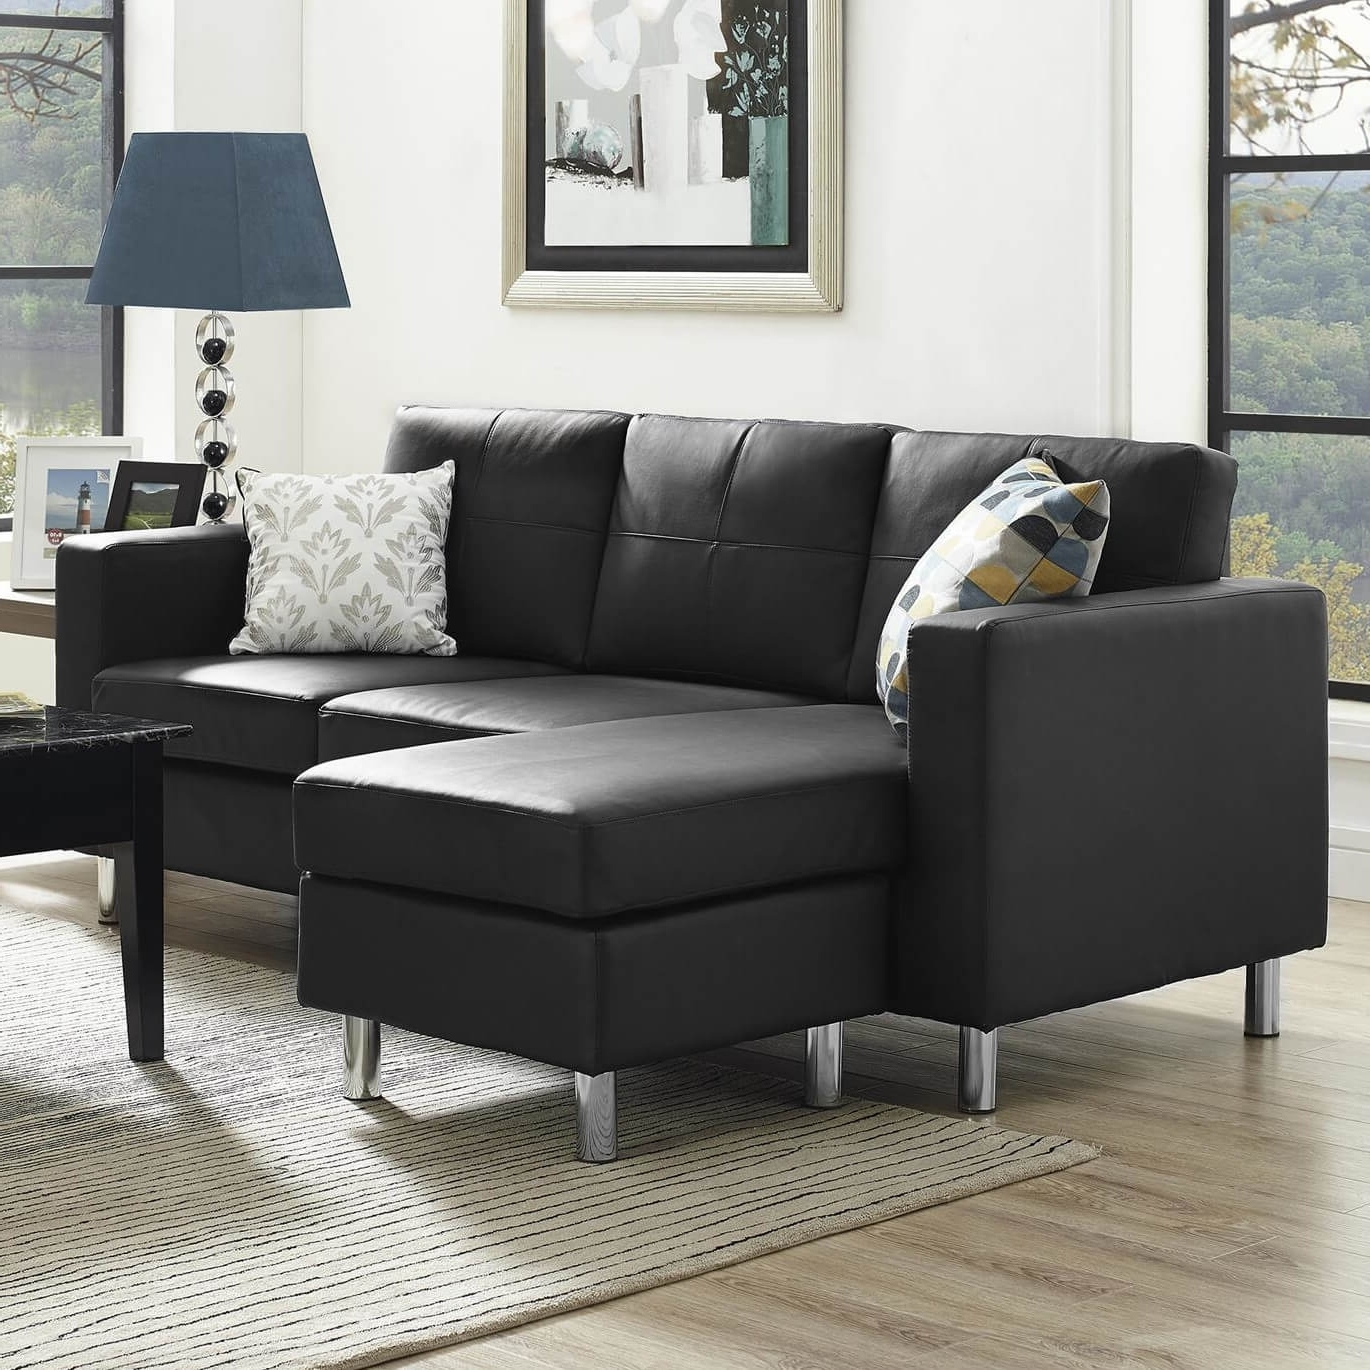 2019 40 Cheap Sectional Sofas Under $500 For 2018 For Sectional Sofas Under  (View 1 of 20)